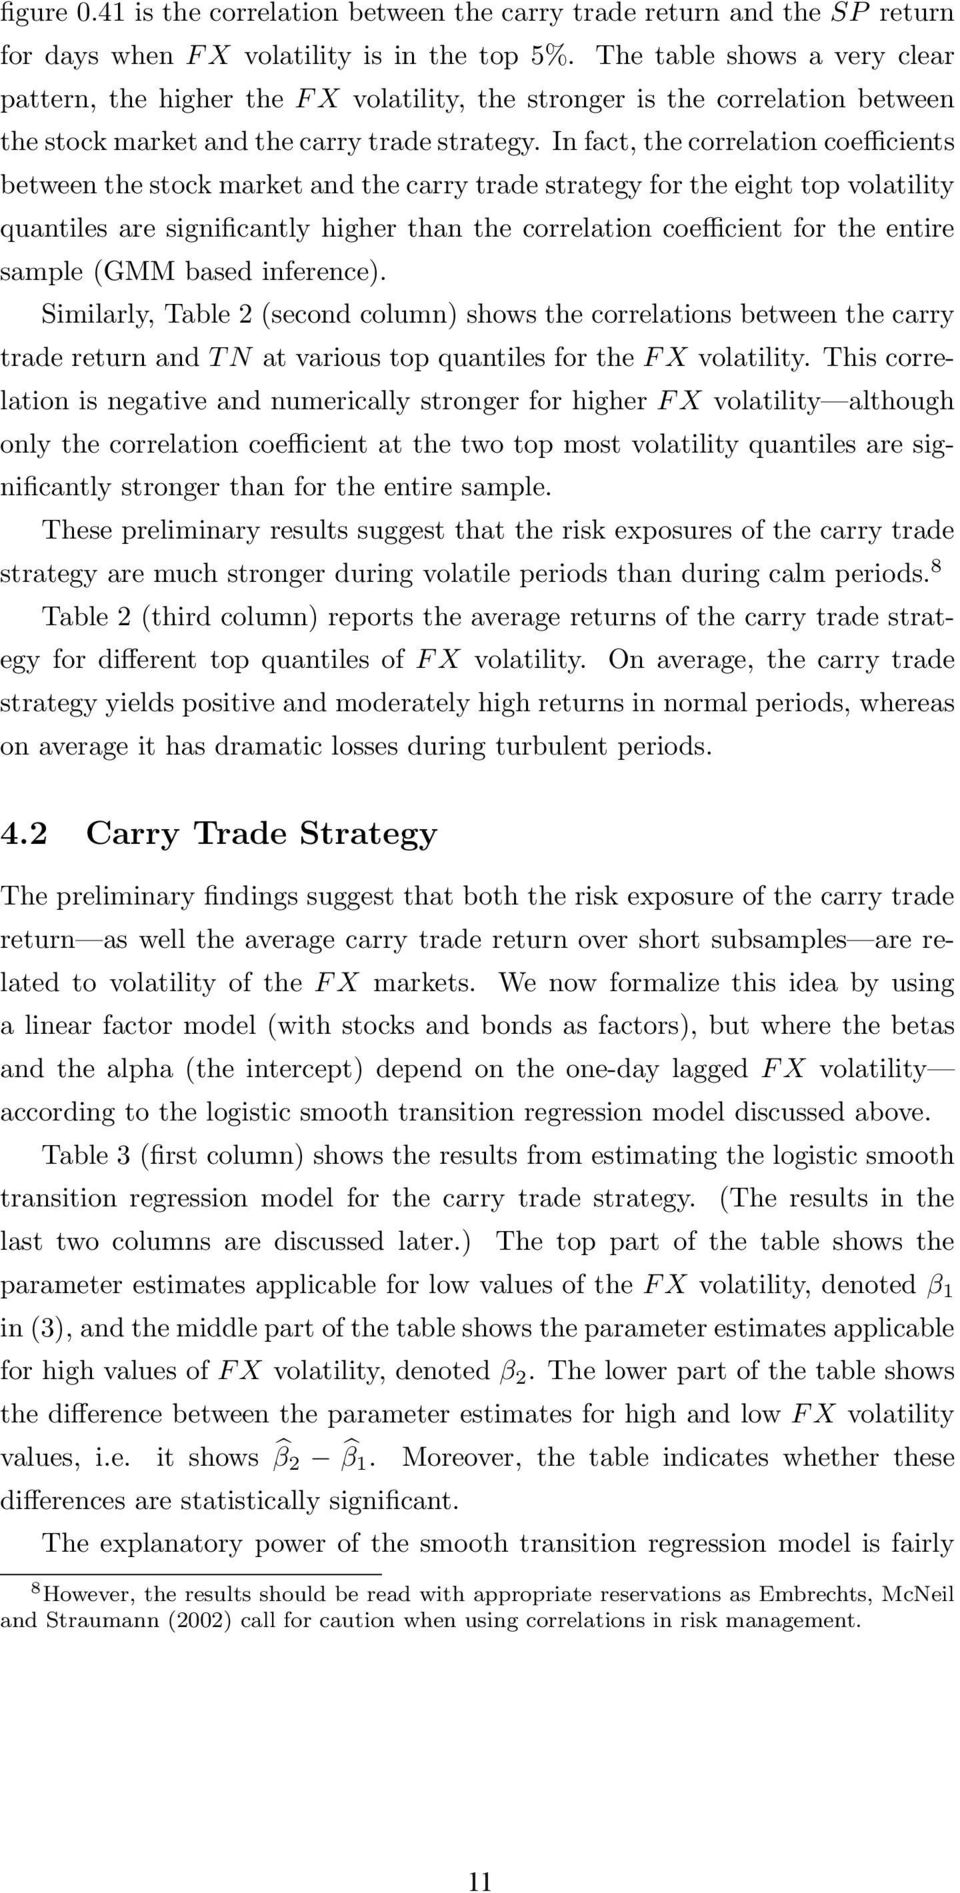 In fact, the correlation coefficients between the stock market and the carry trade strategy for the eight top volatility quantiles are significantly higher than the correlation coefficient for the